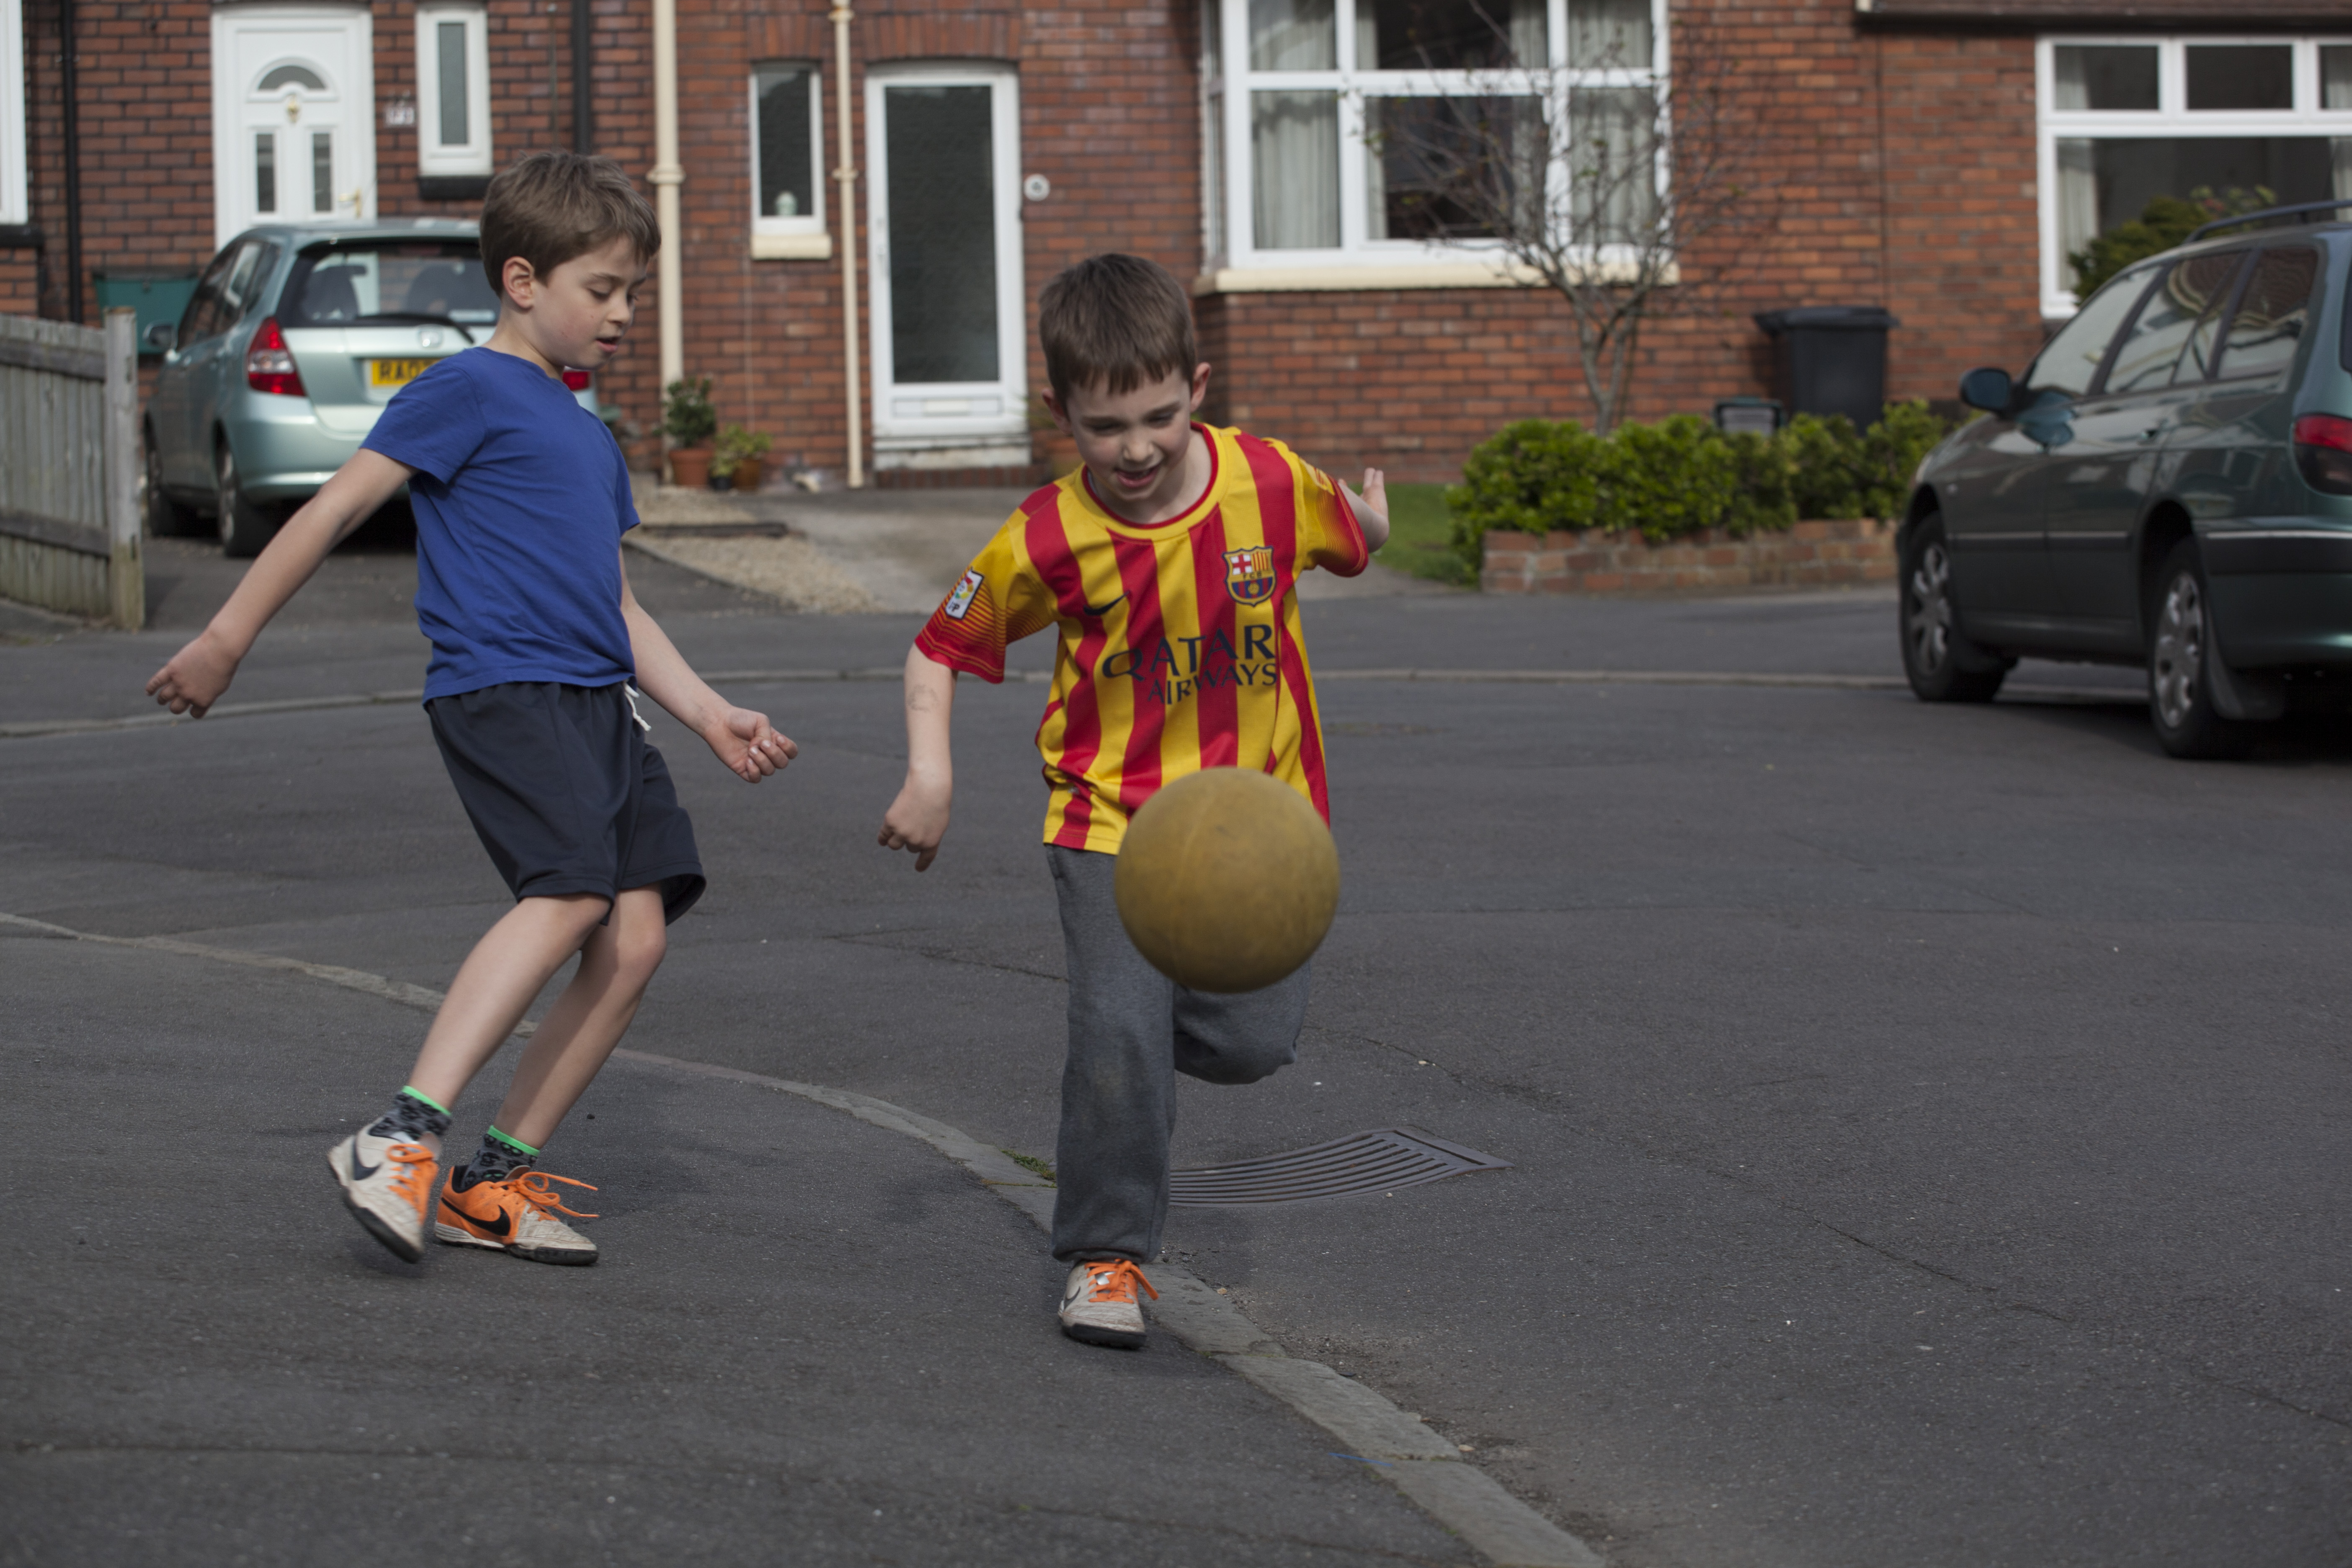 Playing football in the street